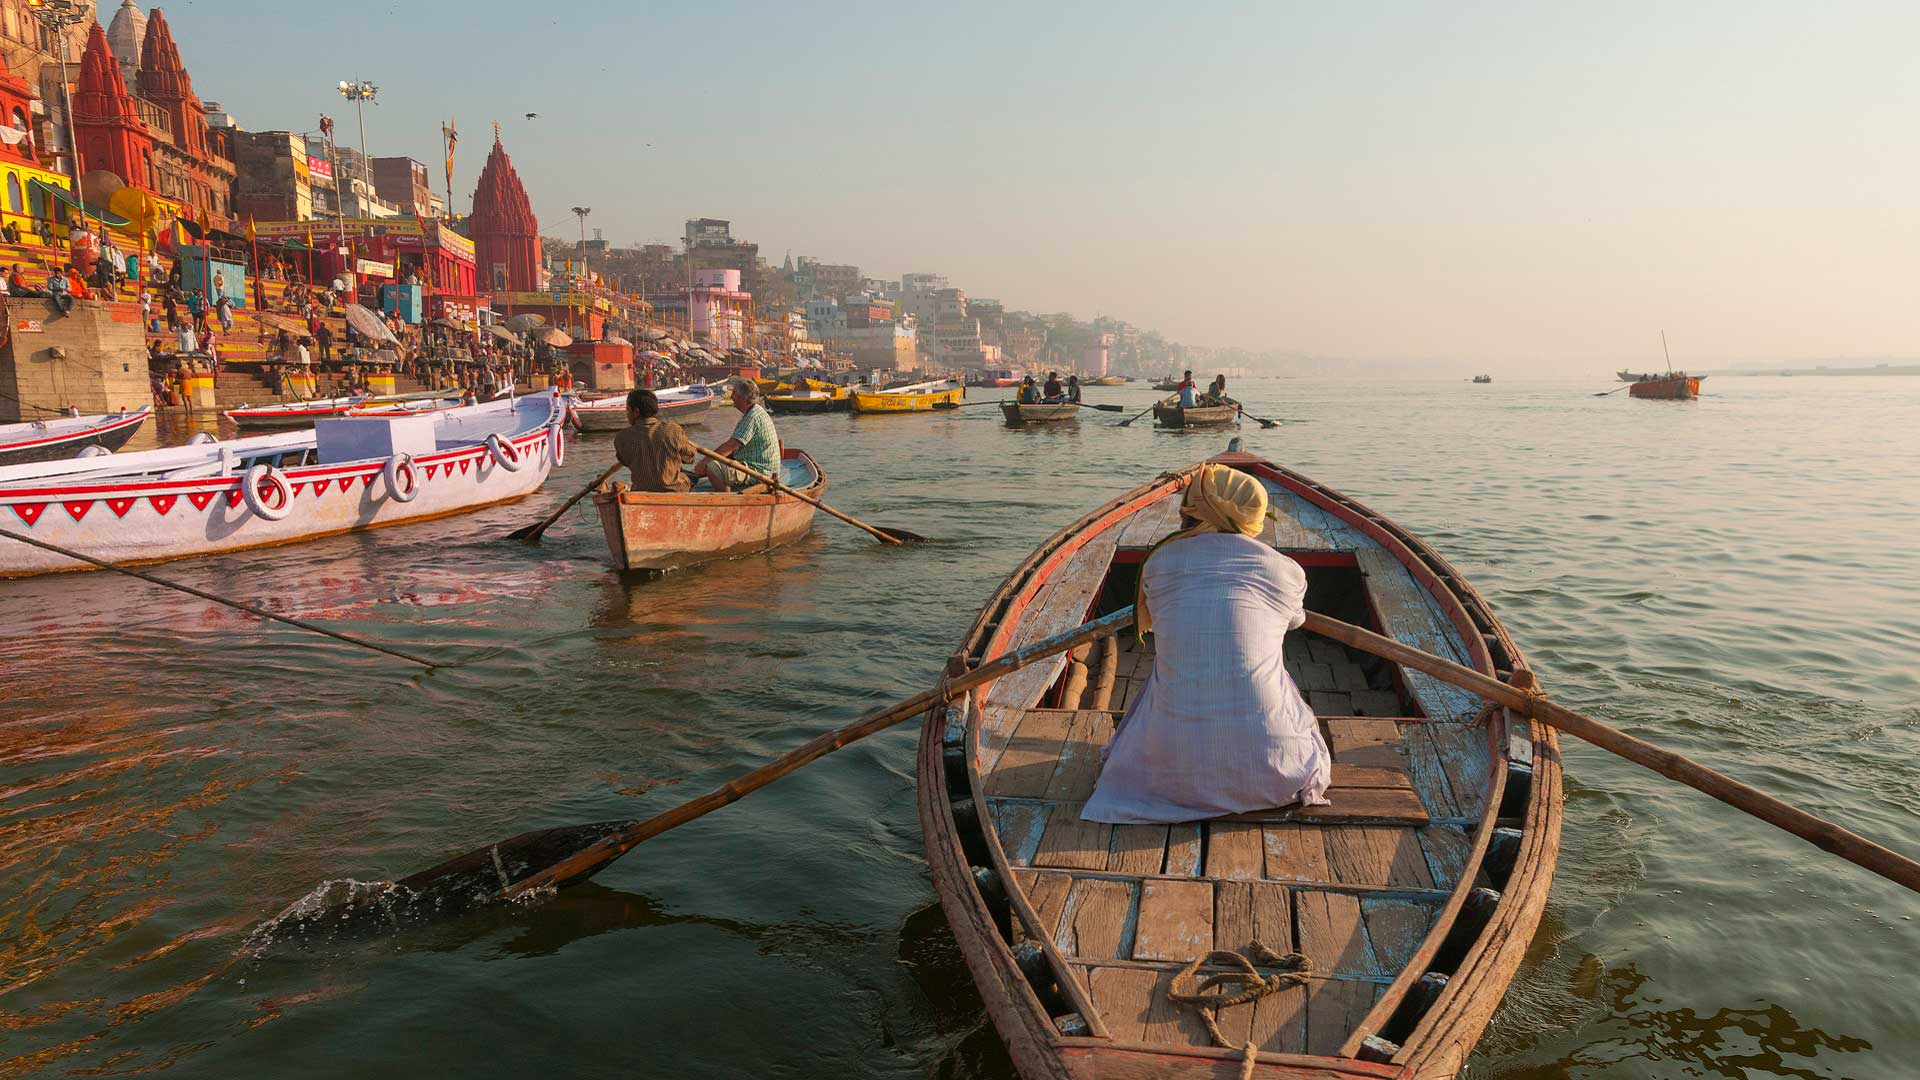 Morning scene on the Ganges ghats in Varanasi, India with GeoEx